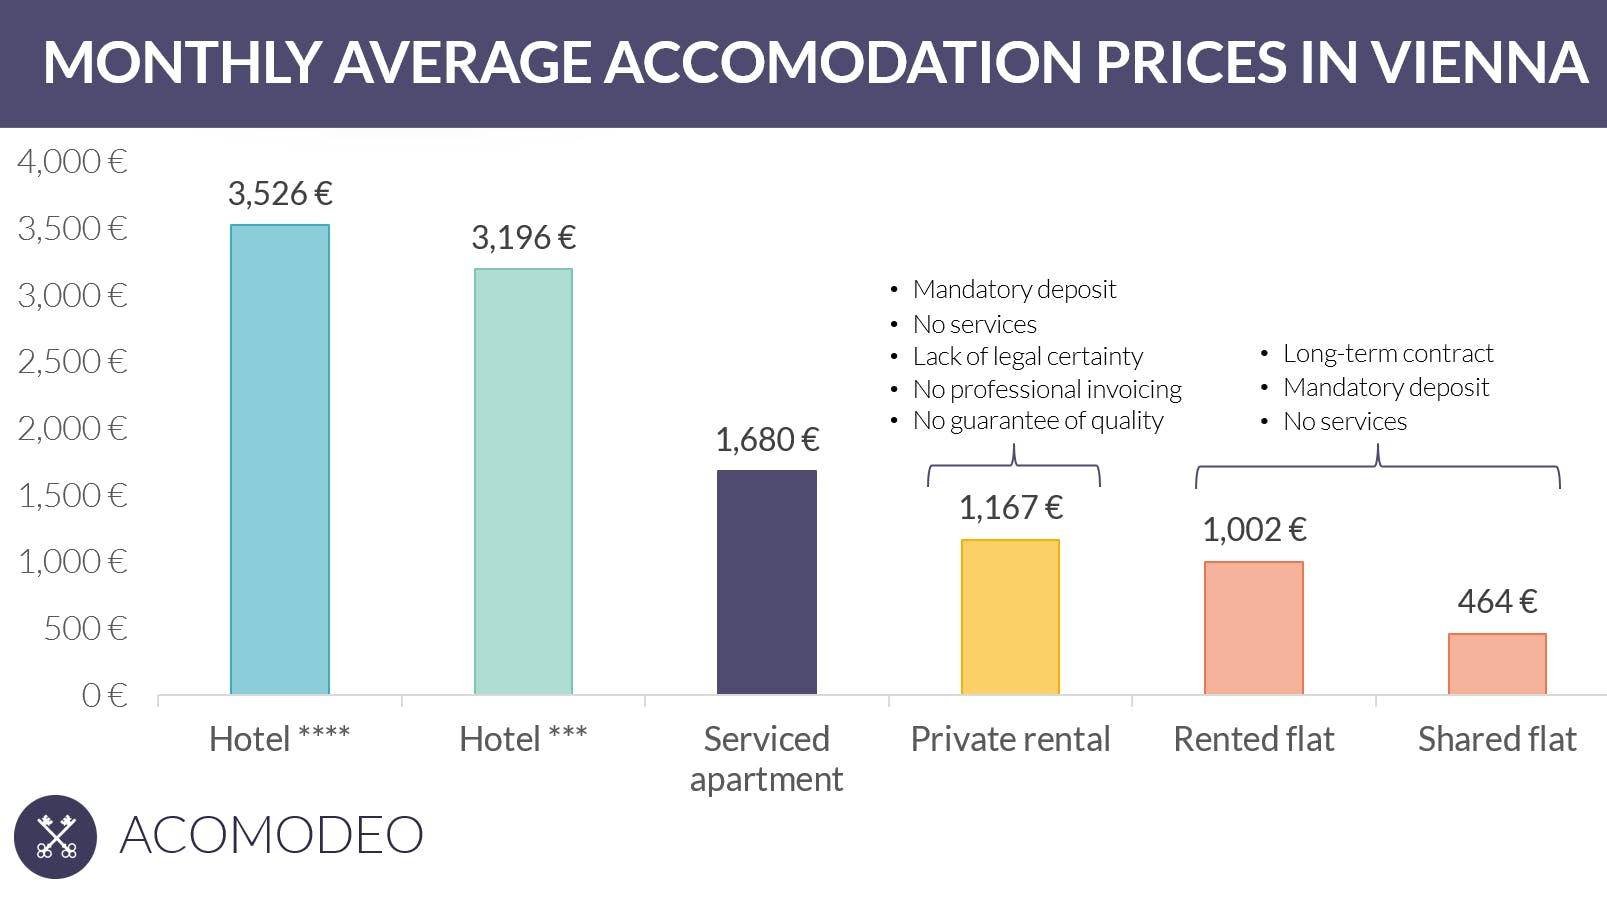 Monthly average accommodation prices in Vienna